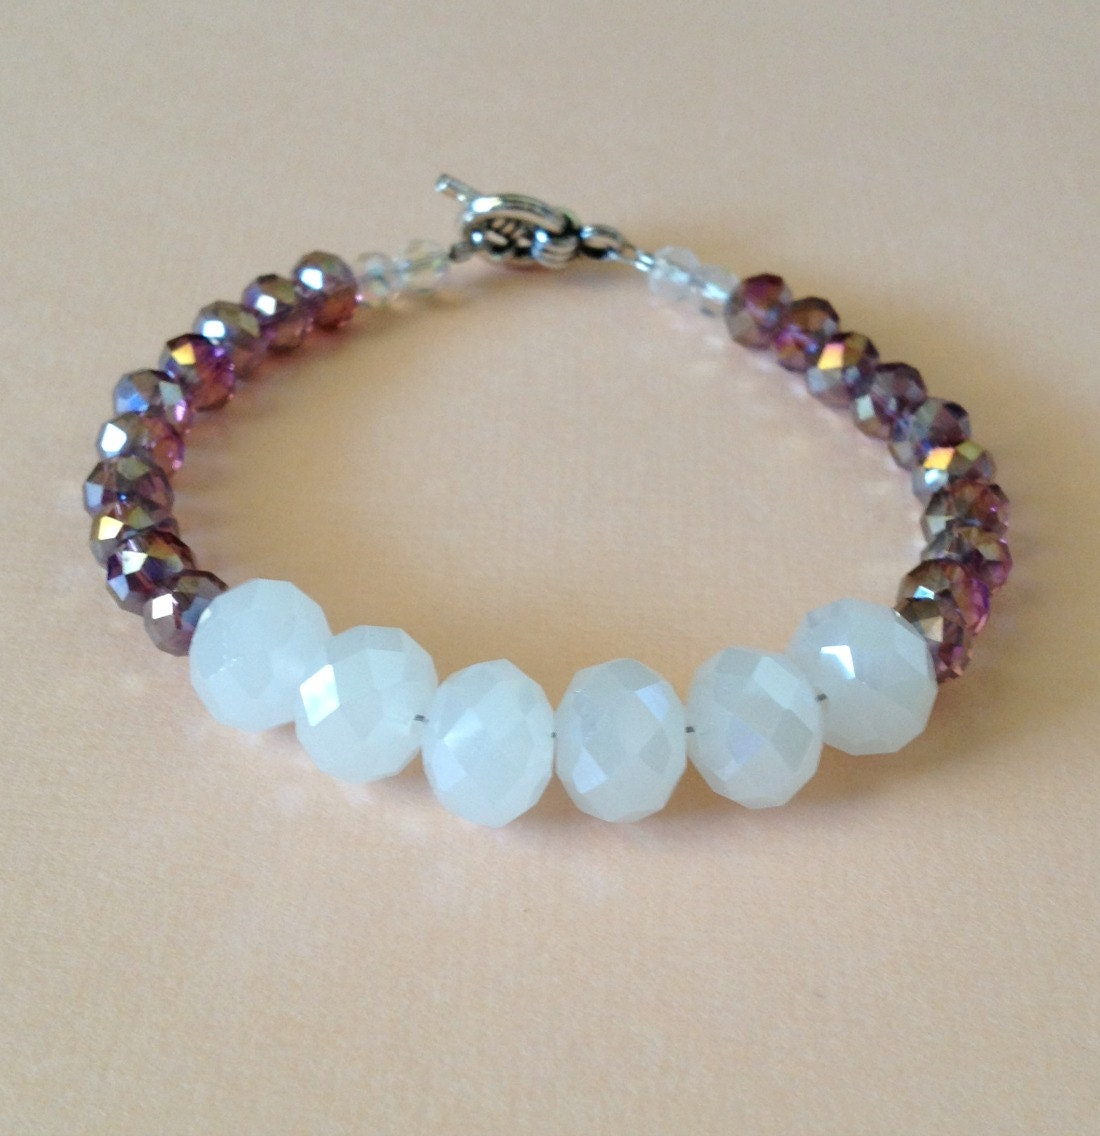 adoption fundraiser purple and white bracelet by